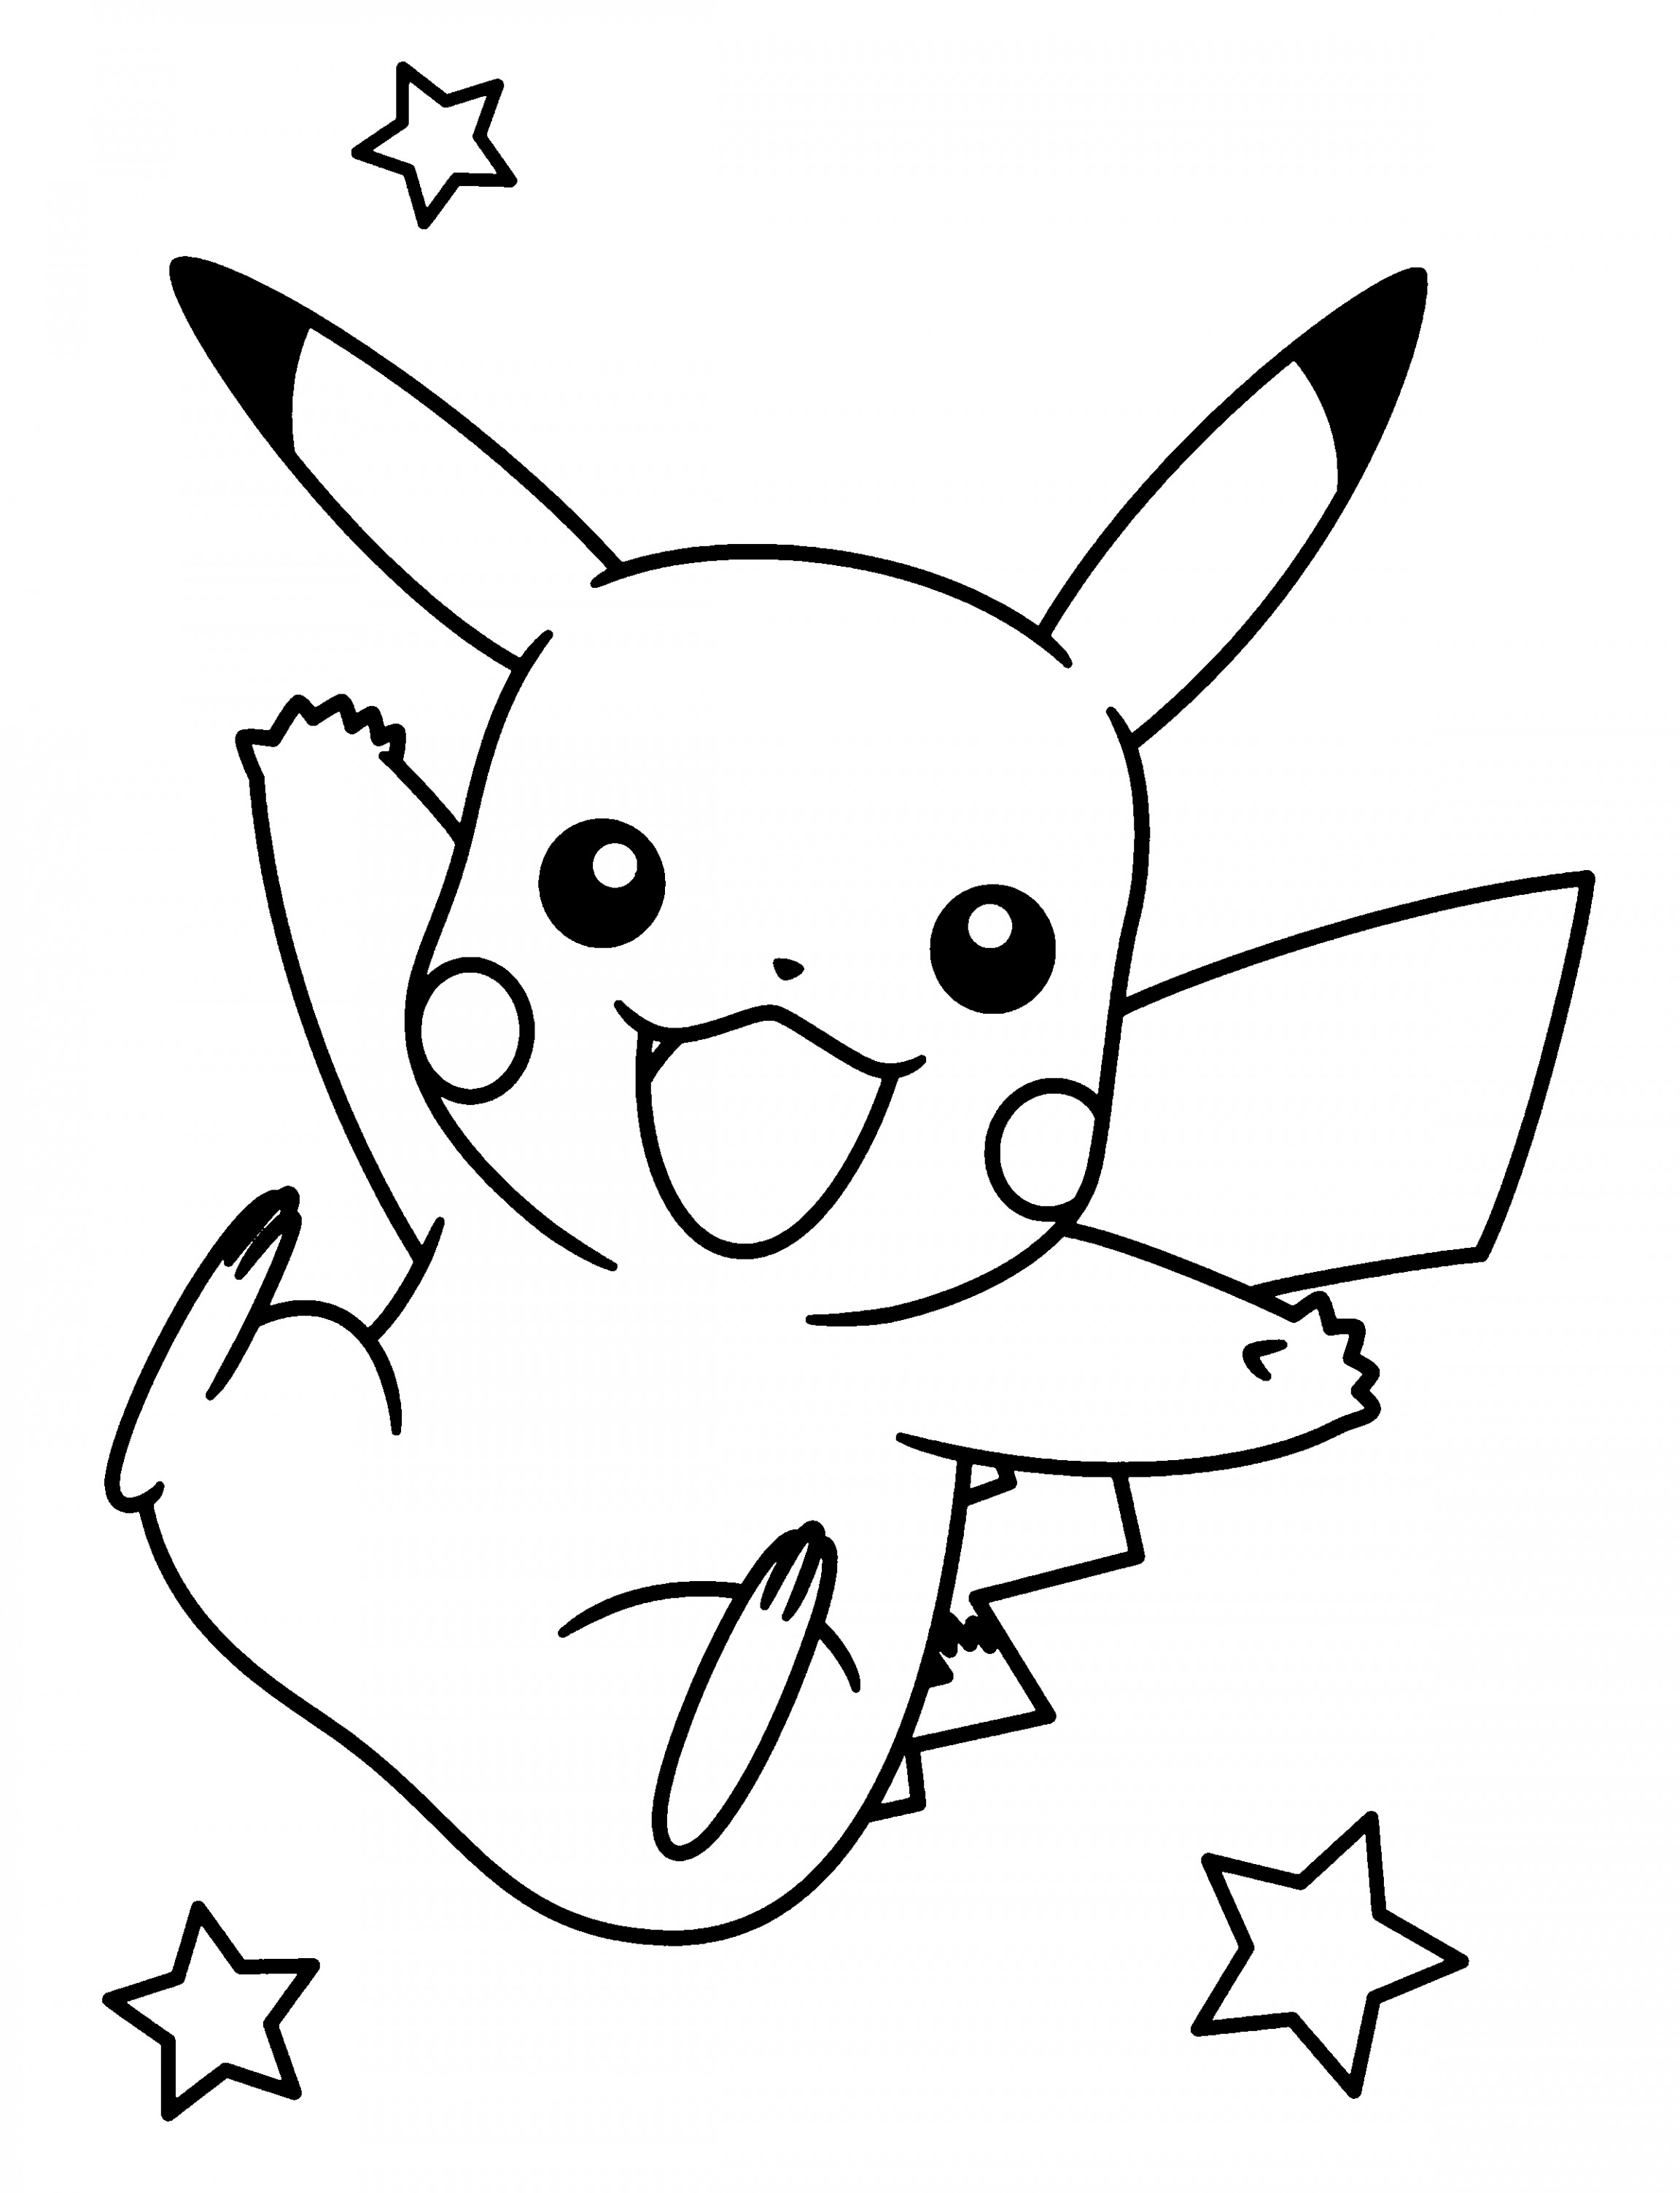 pikachu images for coloring 30 best pikachu coloring pages visual arts ideas pikachu images for coloring